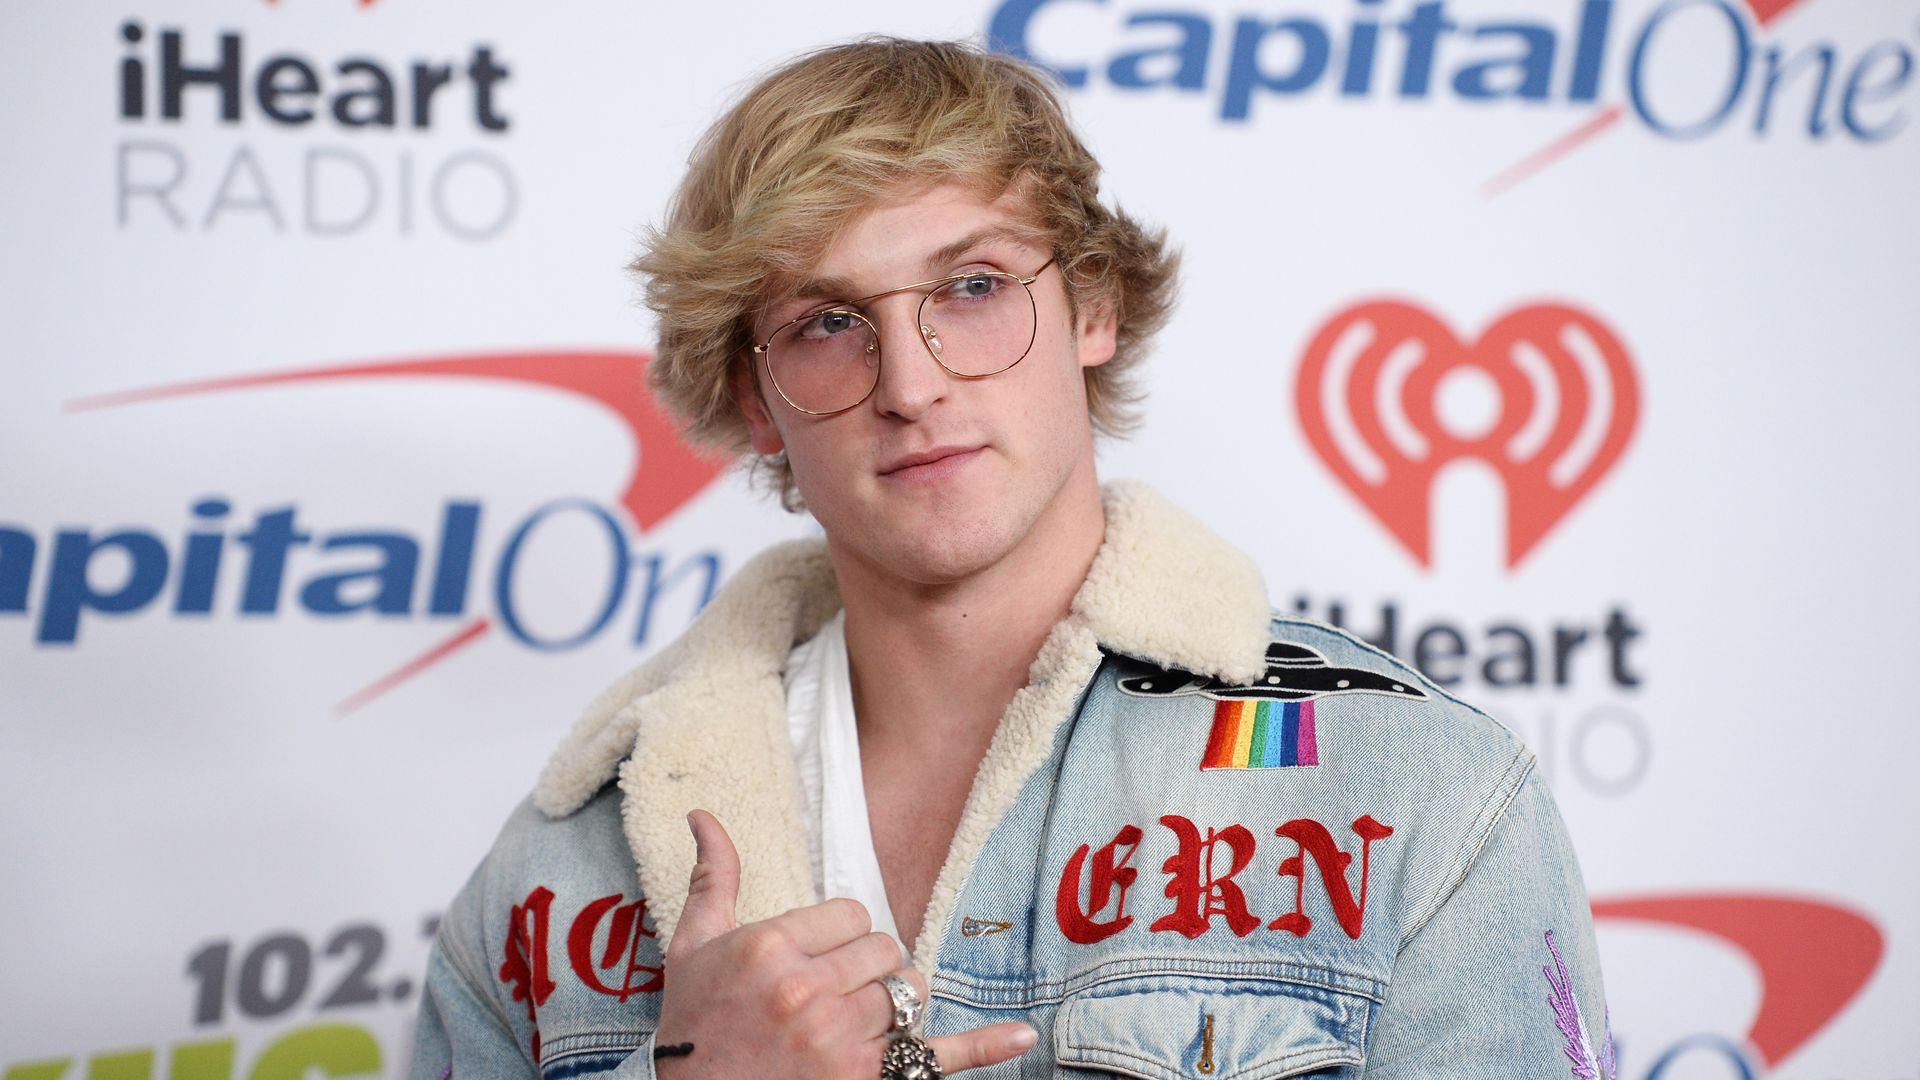 Logan Paul at an event